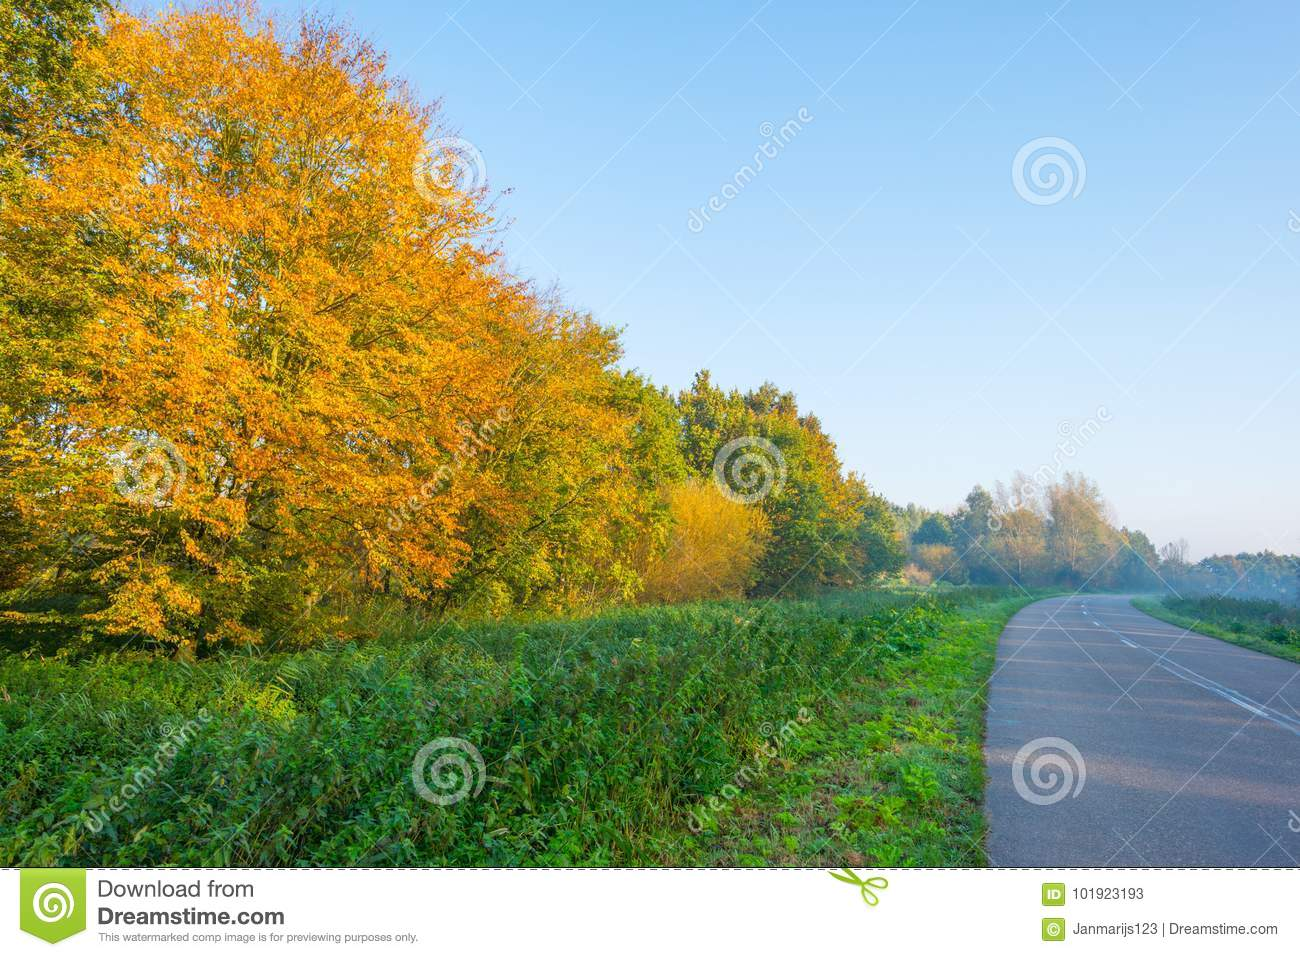 Road Along Trees In Fall Colors At Sunrise Stock Image - Image of ...